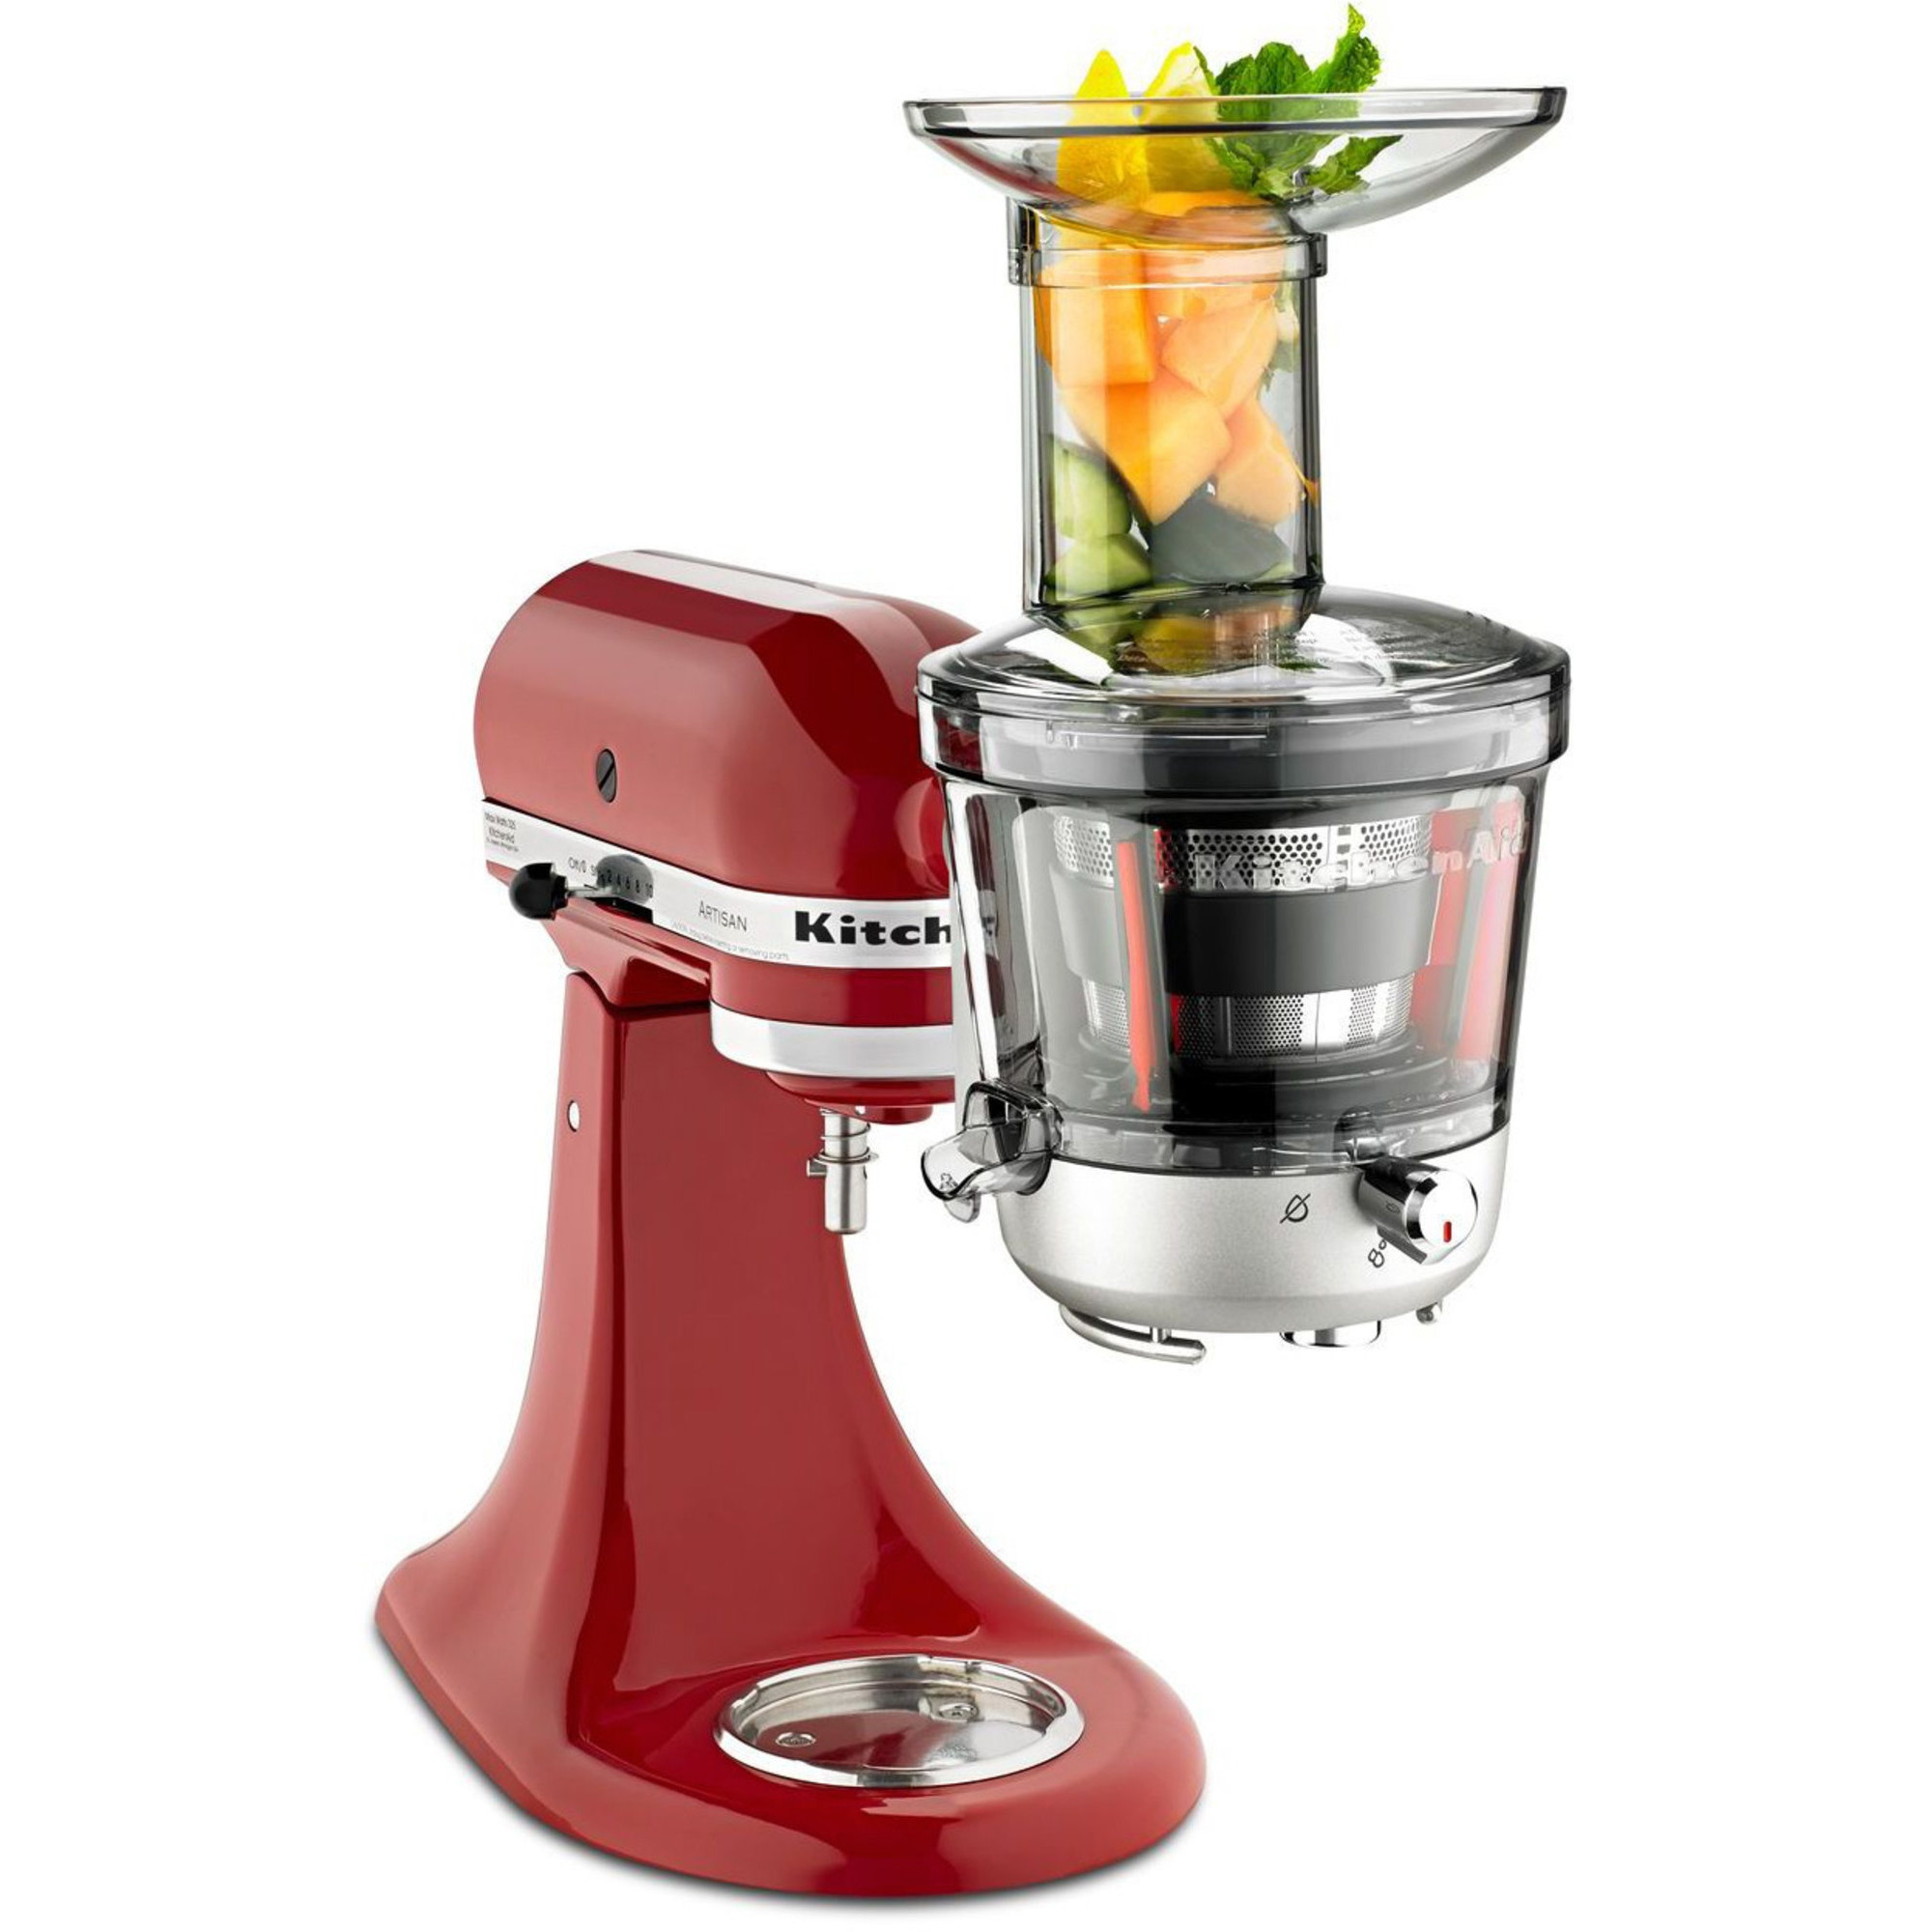 Slowjuicer Tilbud Kitchenaid : SM1JA Slow Juicer fra KitchenAid Slow Juicer tilbehor til KitchenAid